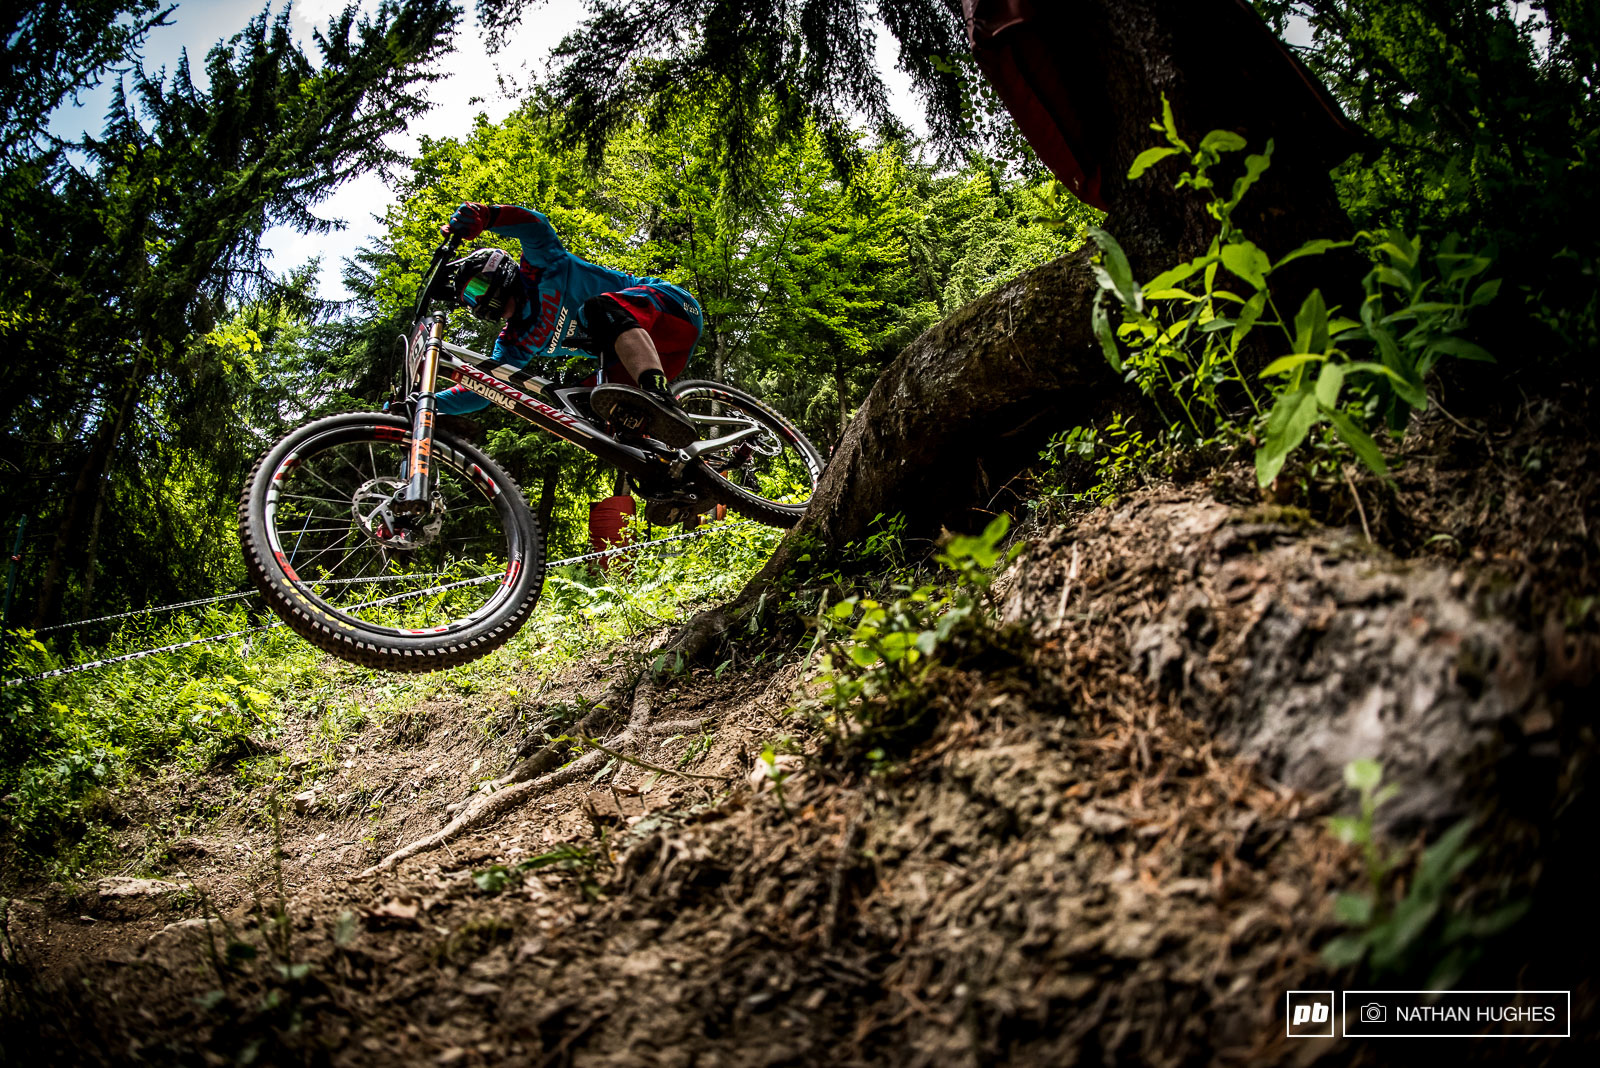 Steve Peat on the hunt for some overdue redemption dating back to 2004.